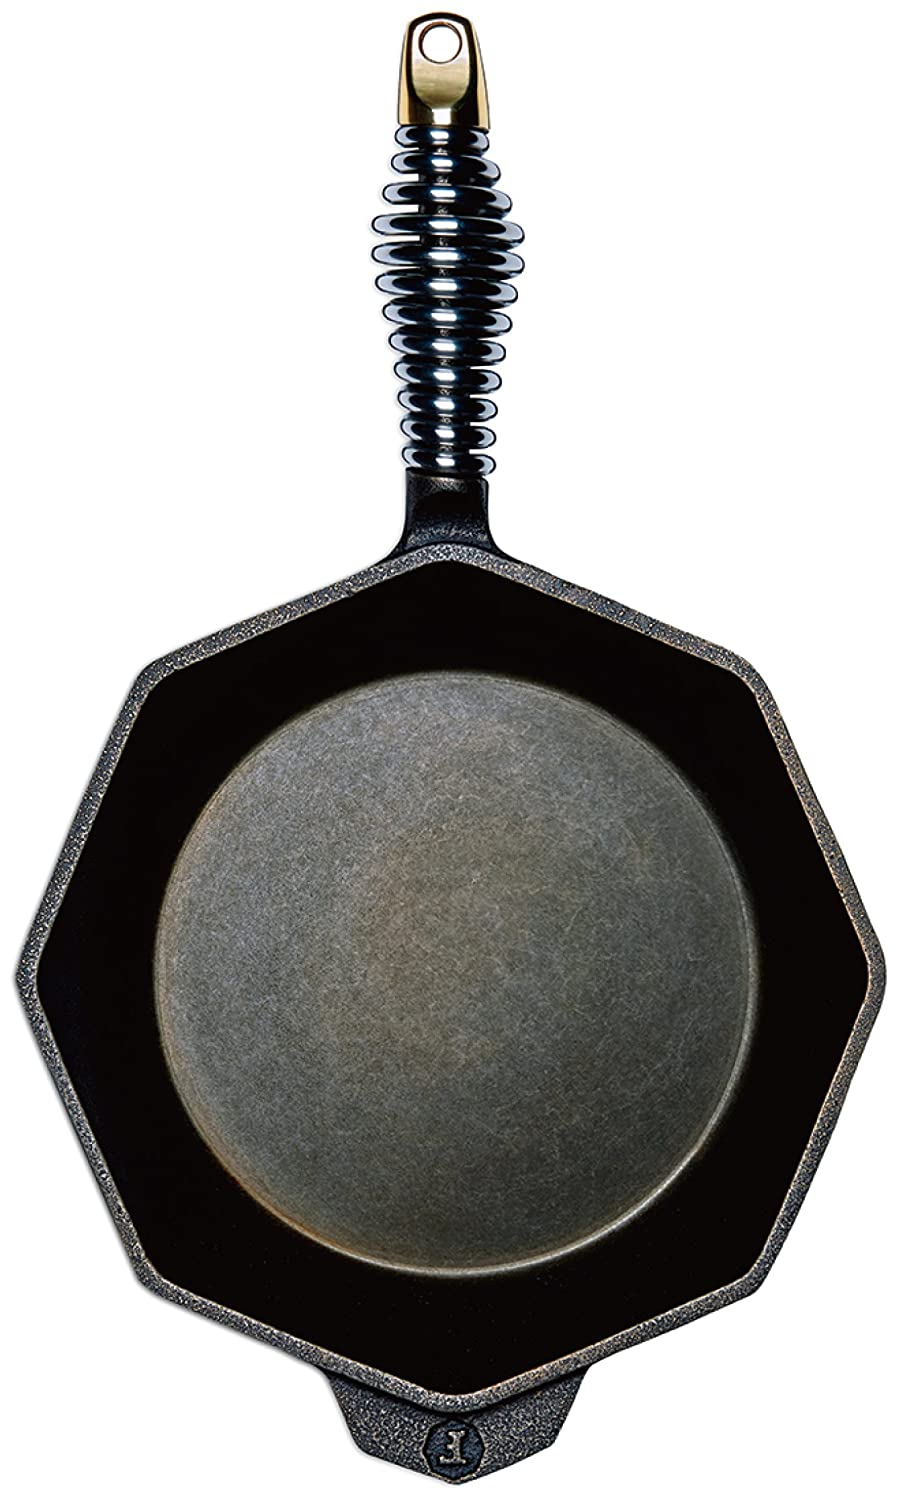 """FINEX - 8"""" Cast Iron Skillet, Modern Heirloom, Handcrafted in the USA, Pre-seasoned with Organic Flaxseed Oil"""